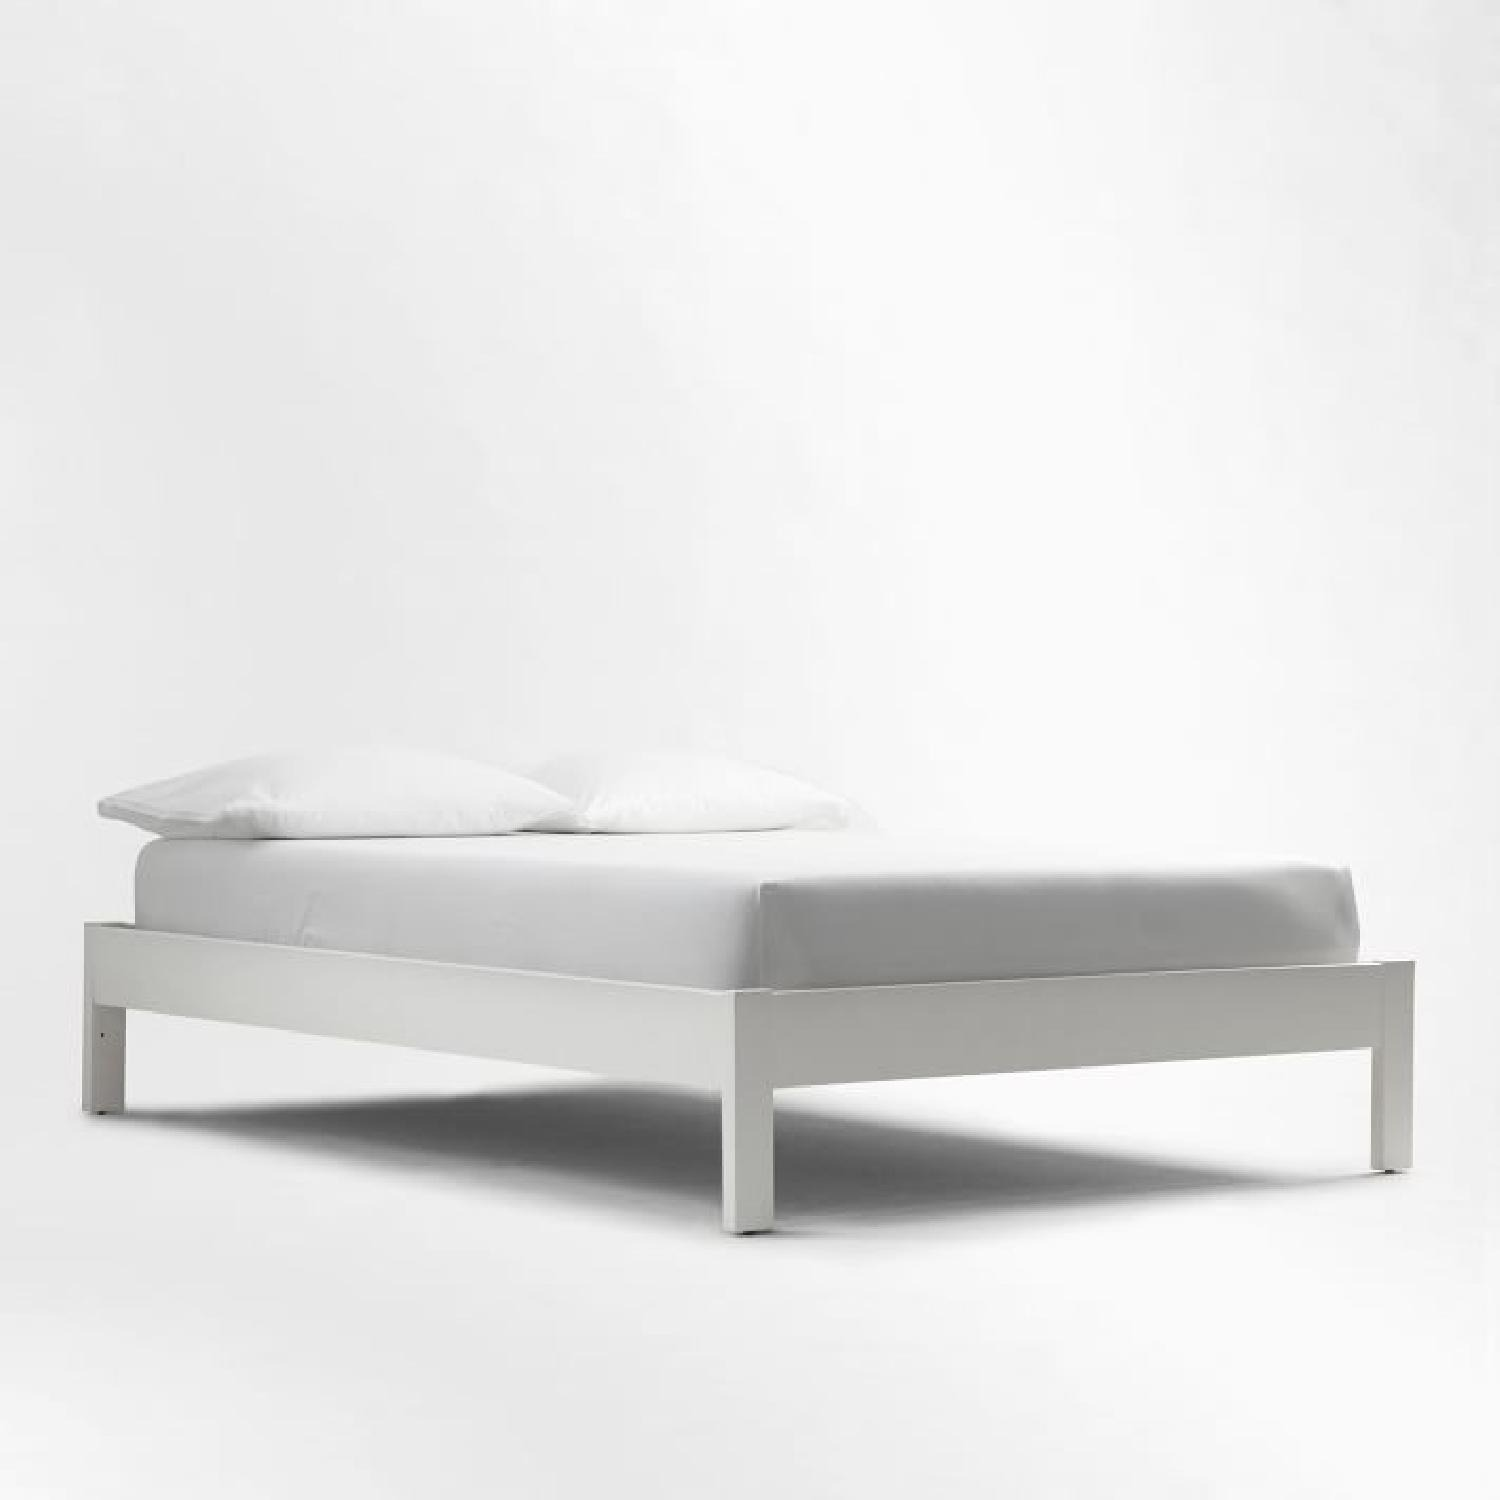 West Elm Simple Bed Frame - Full - White Lacquer - image-0